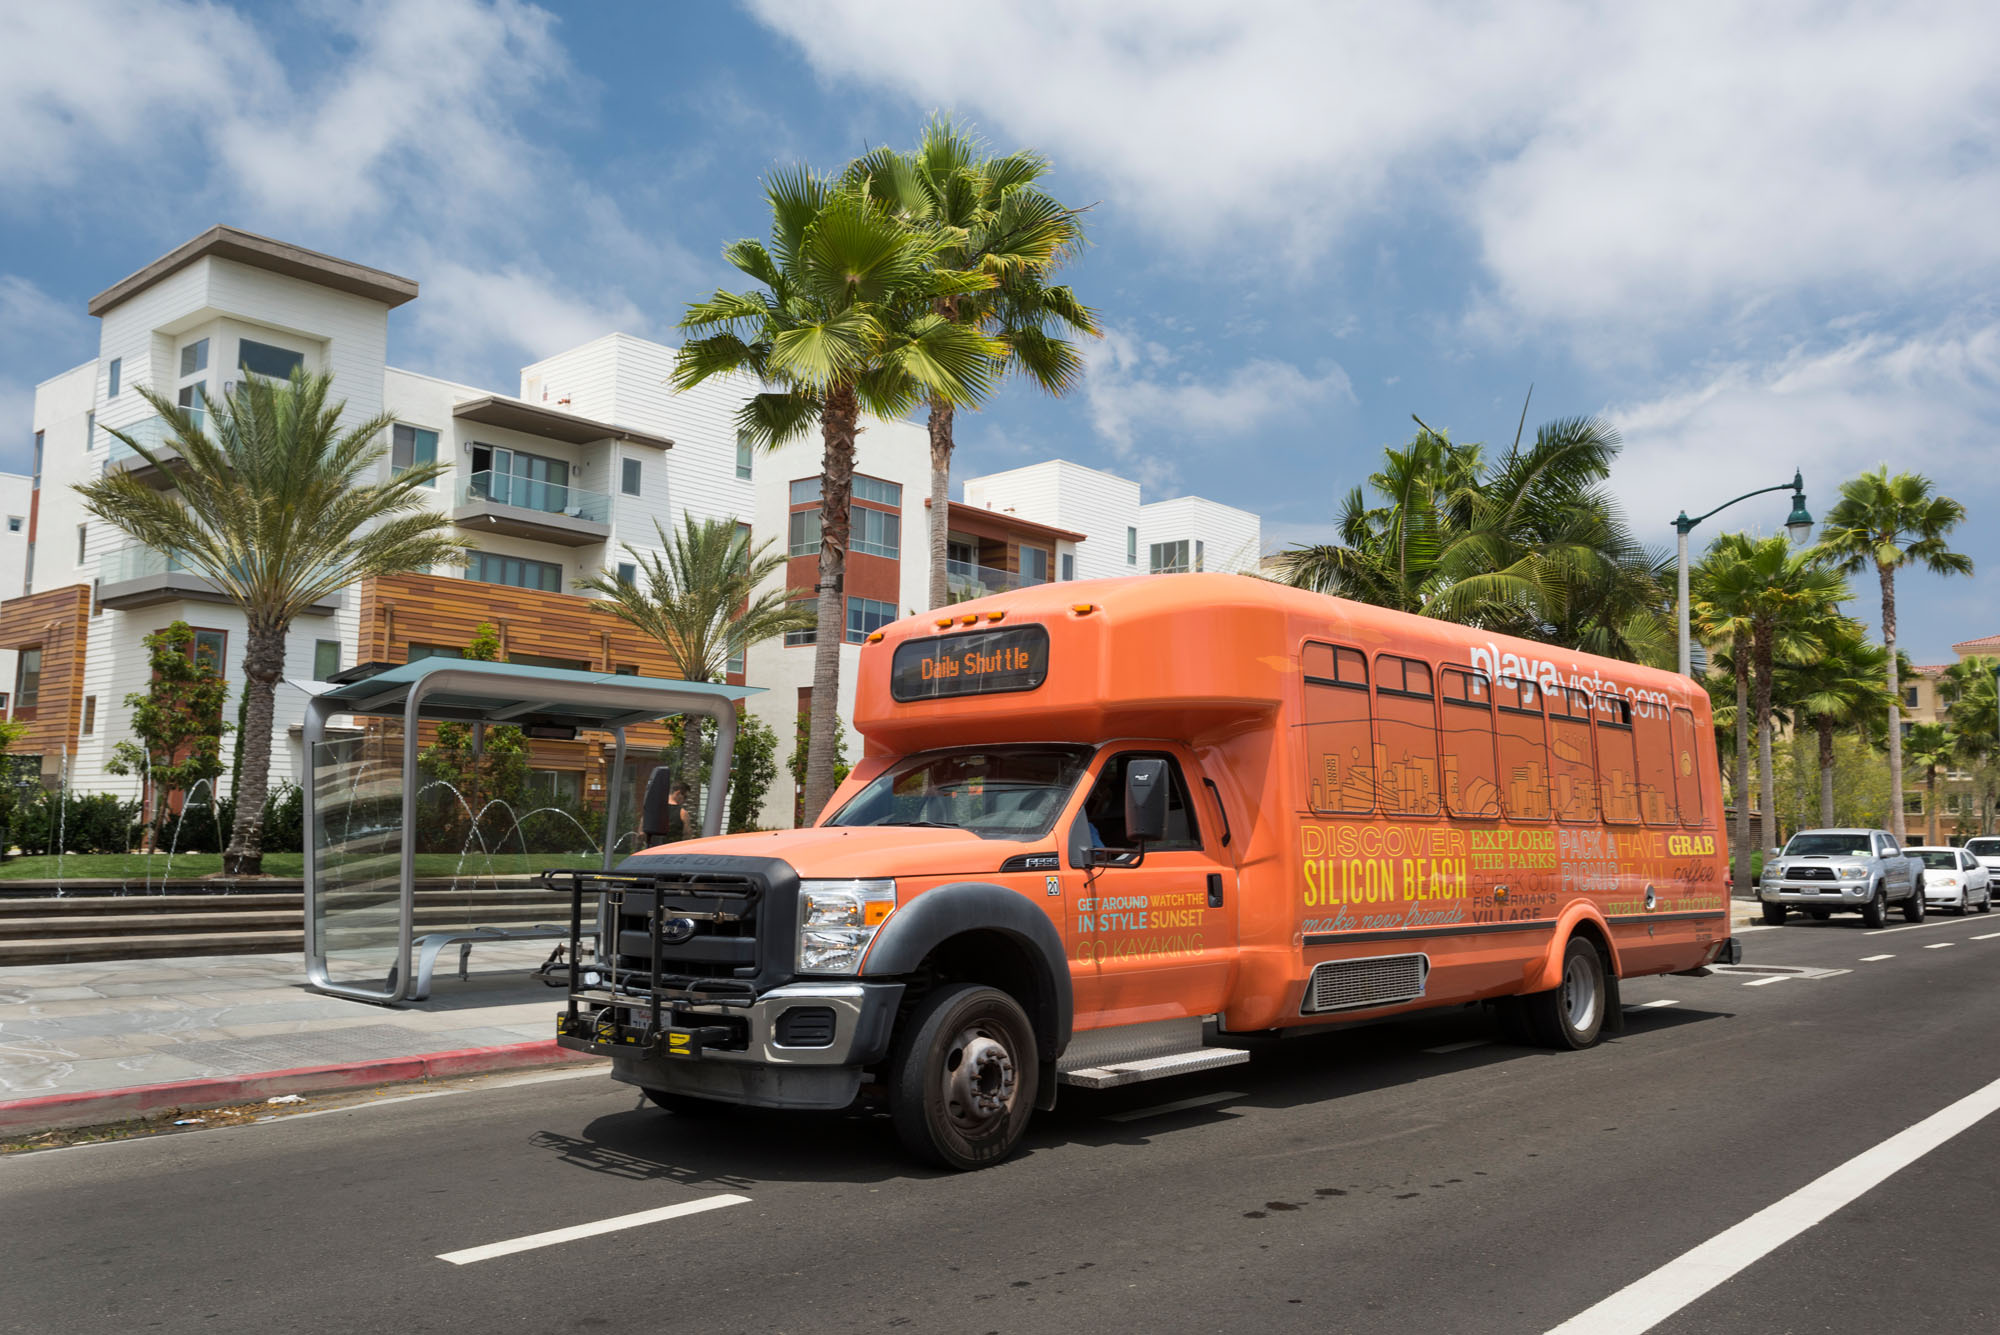 playa-vista-daily-shuttle